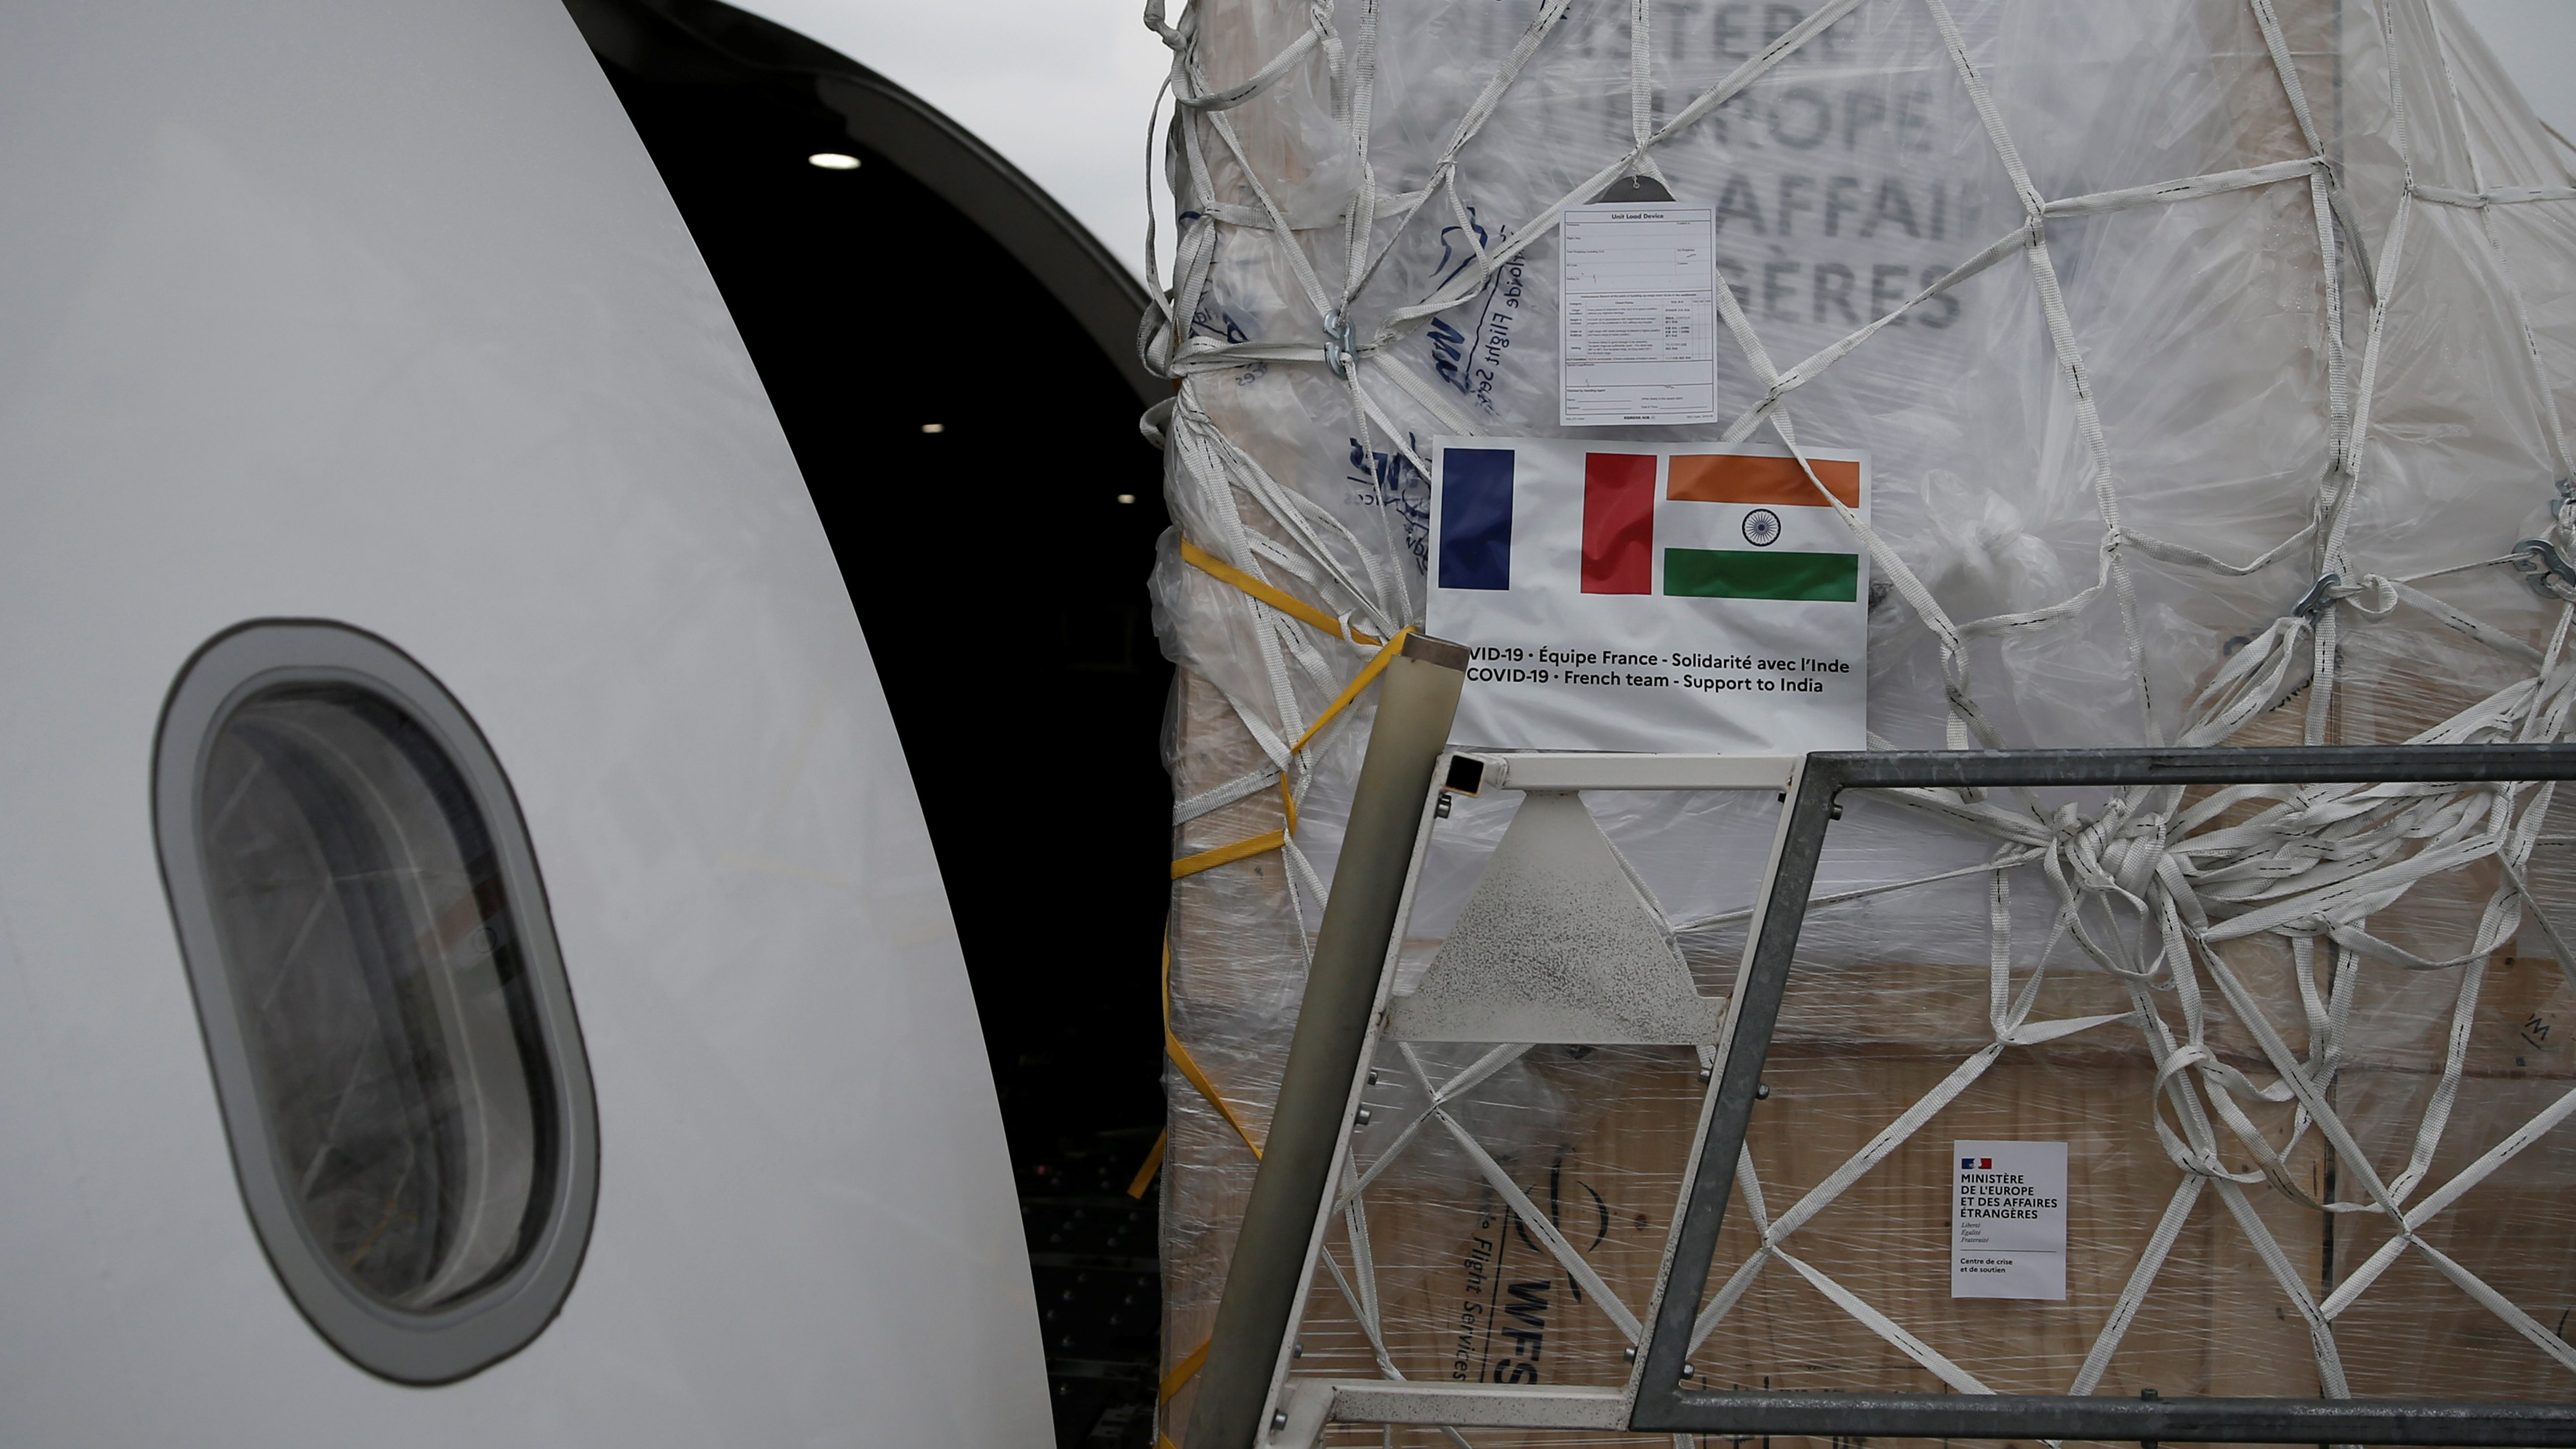 France sends medical equipment to India in COVID-19 crisis